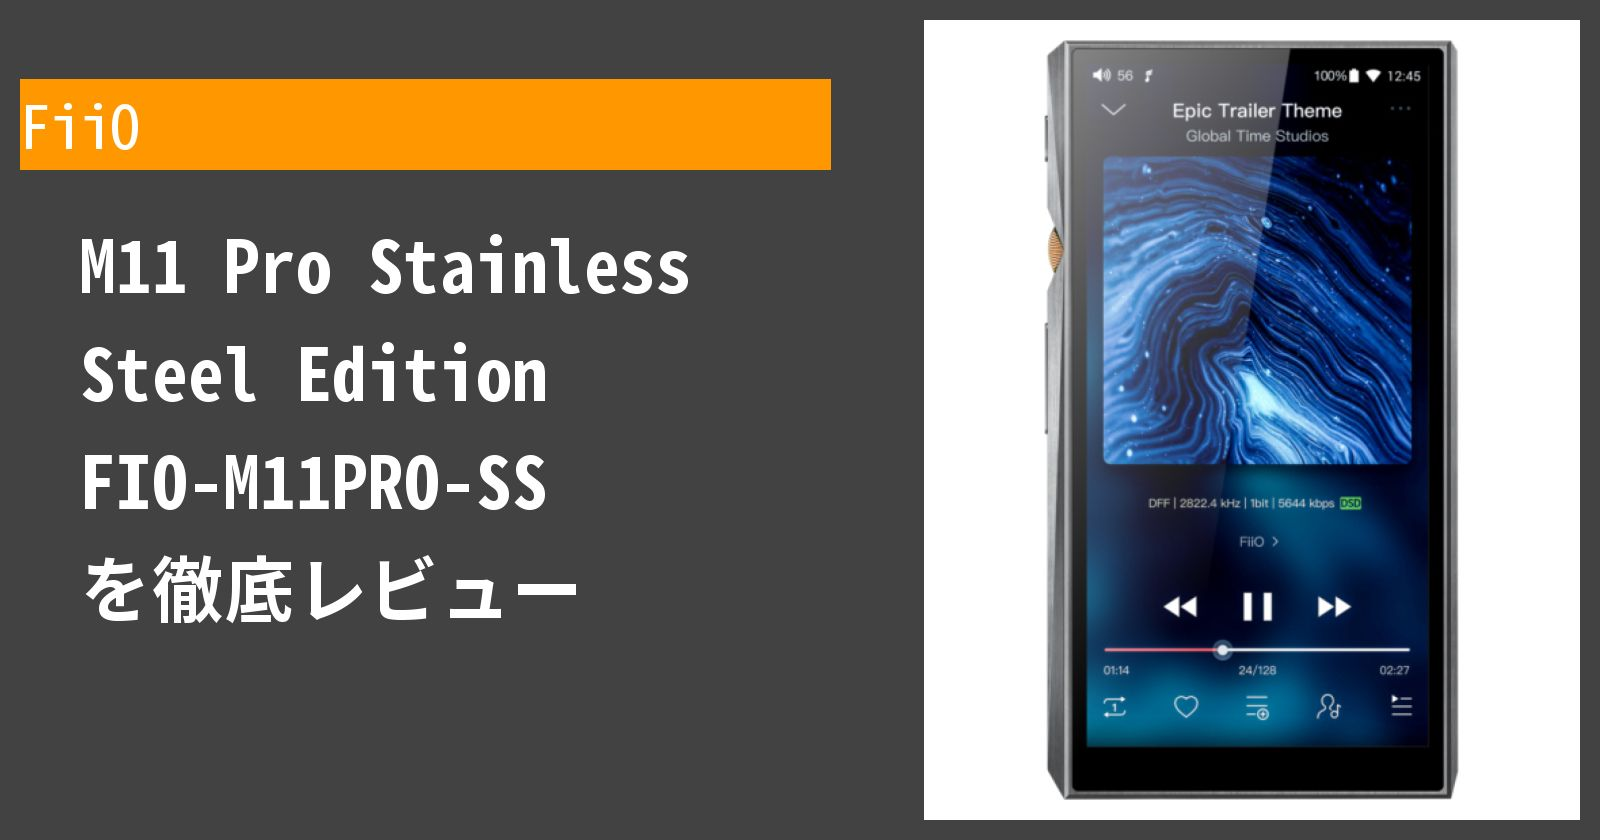 M11 Pro Stainless Steel Edition FIO-M11PRO-SSを徹底評価